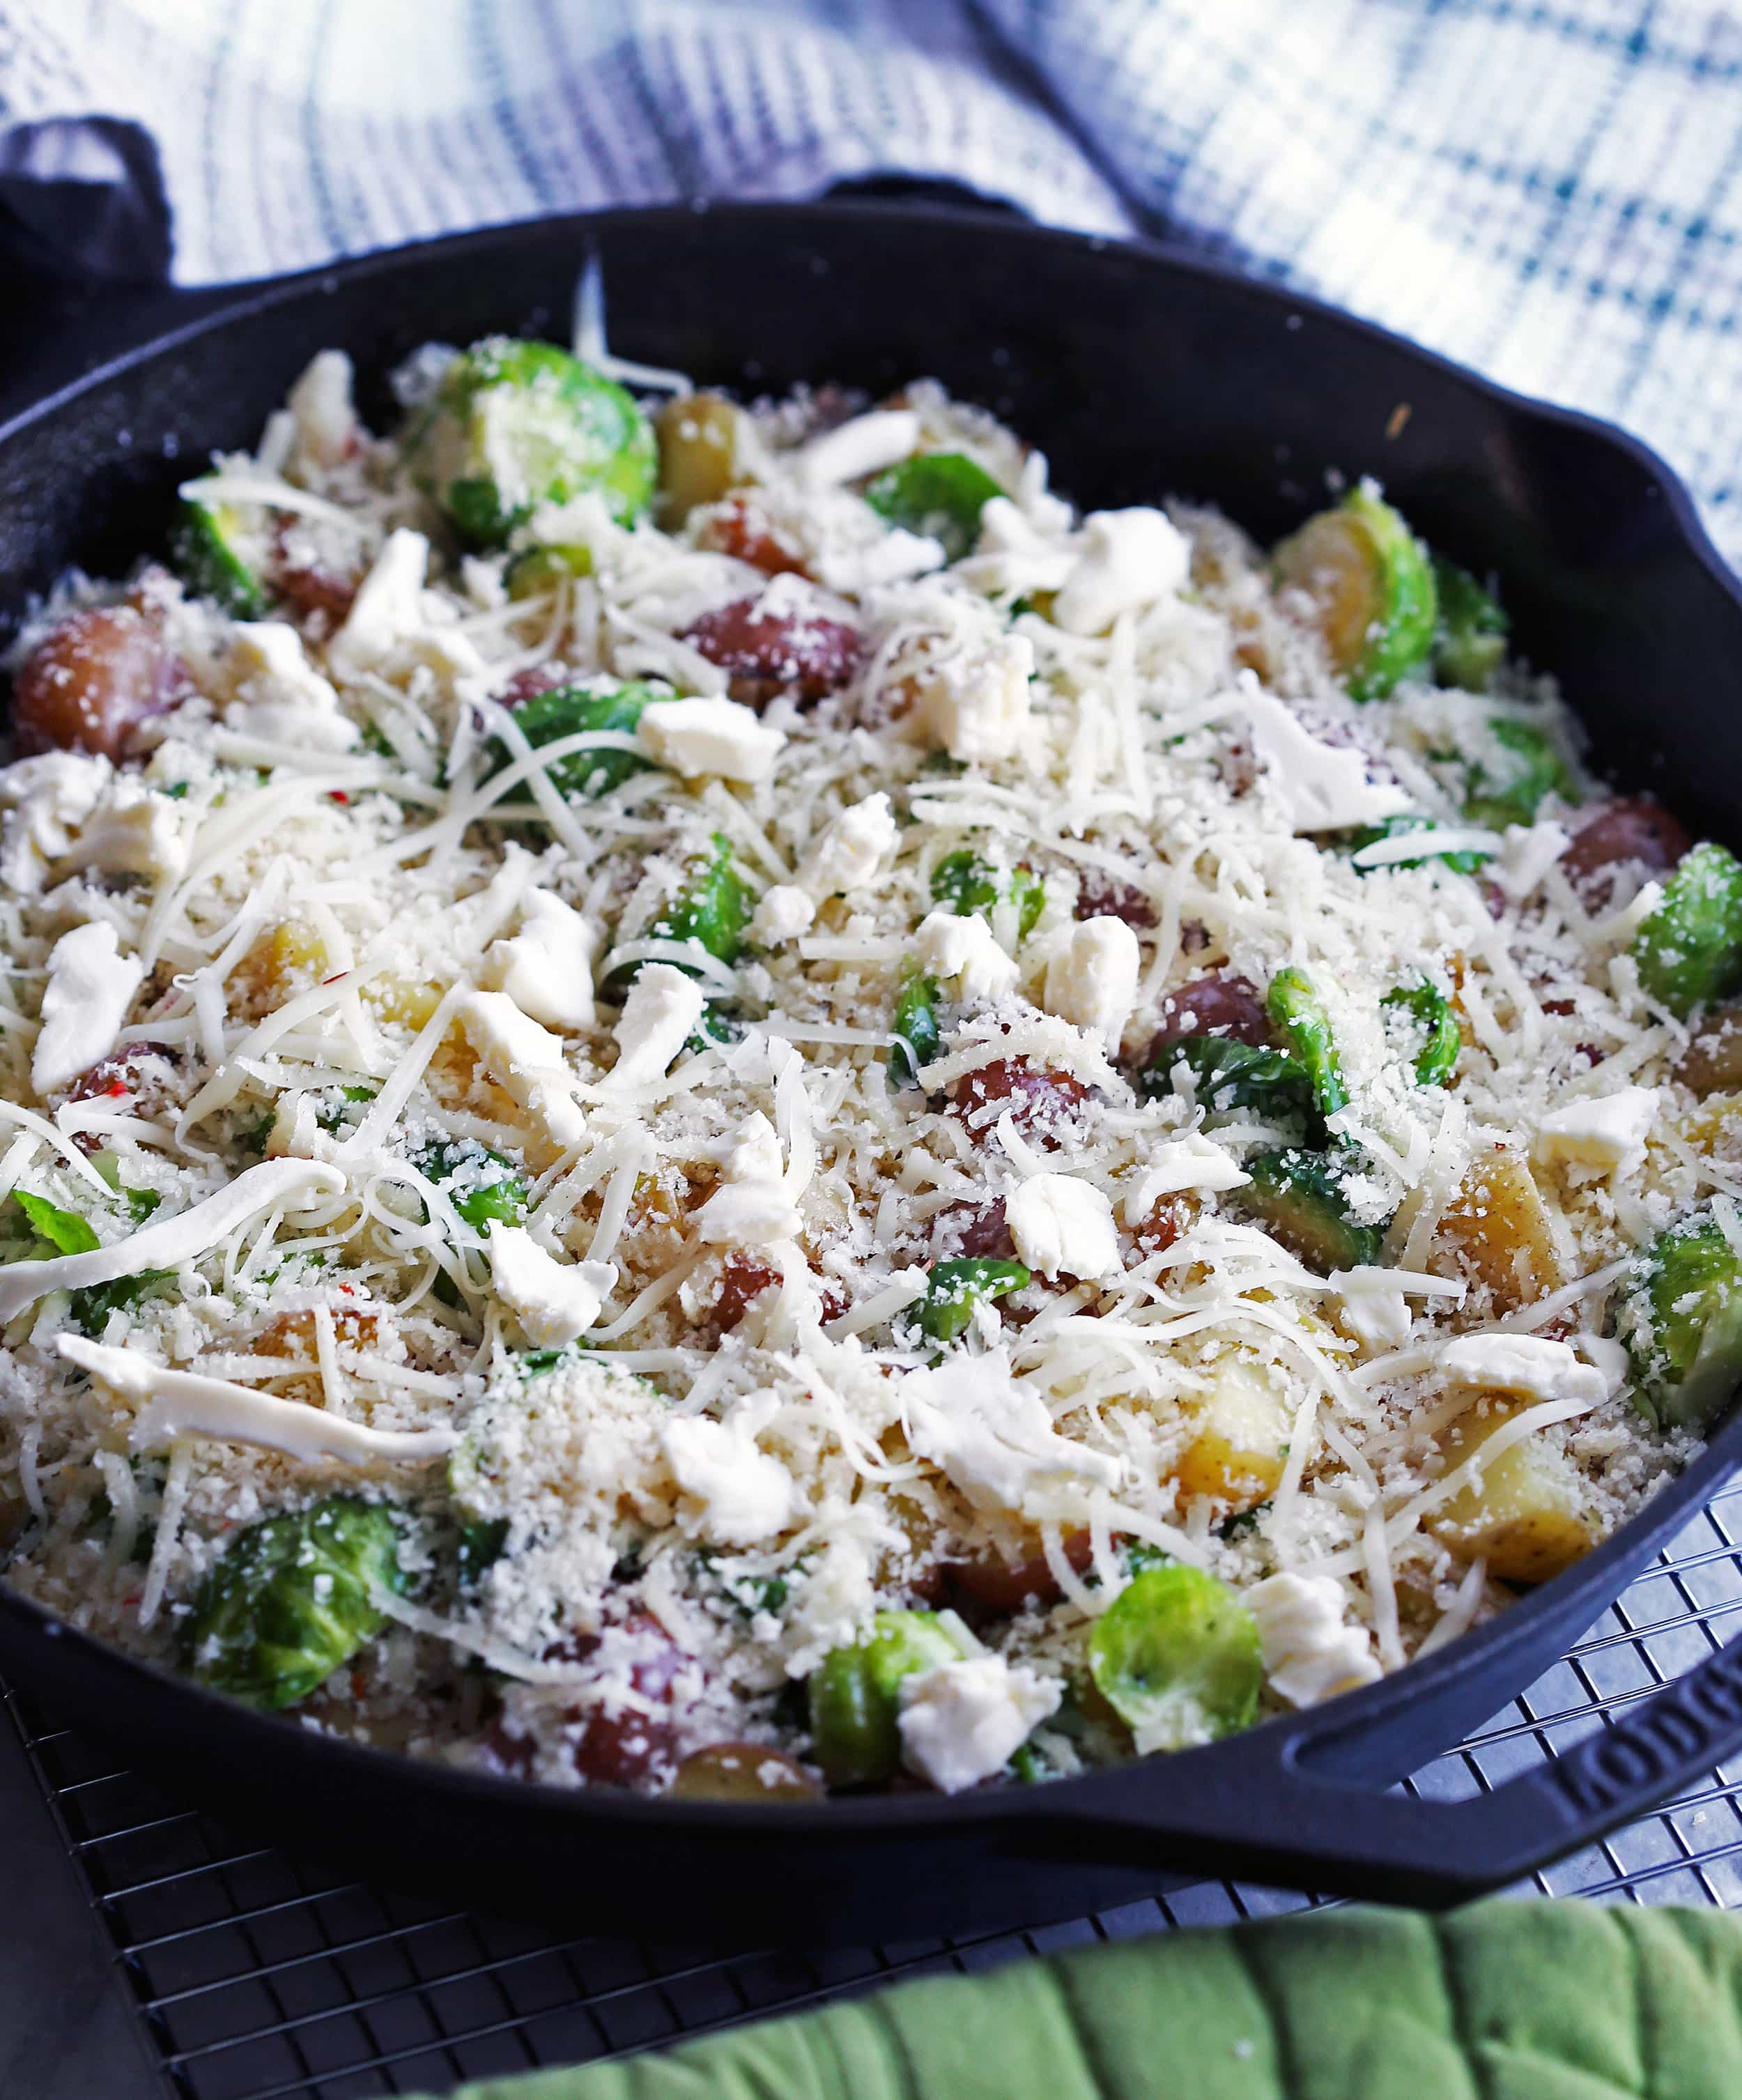 Sautéed onions, baby potatoes, and Brussels sprouts topped with cheese and breadcrumbs in a cast iron skillet.